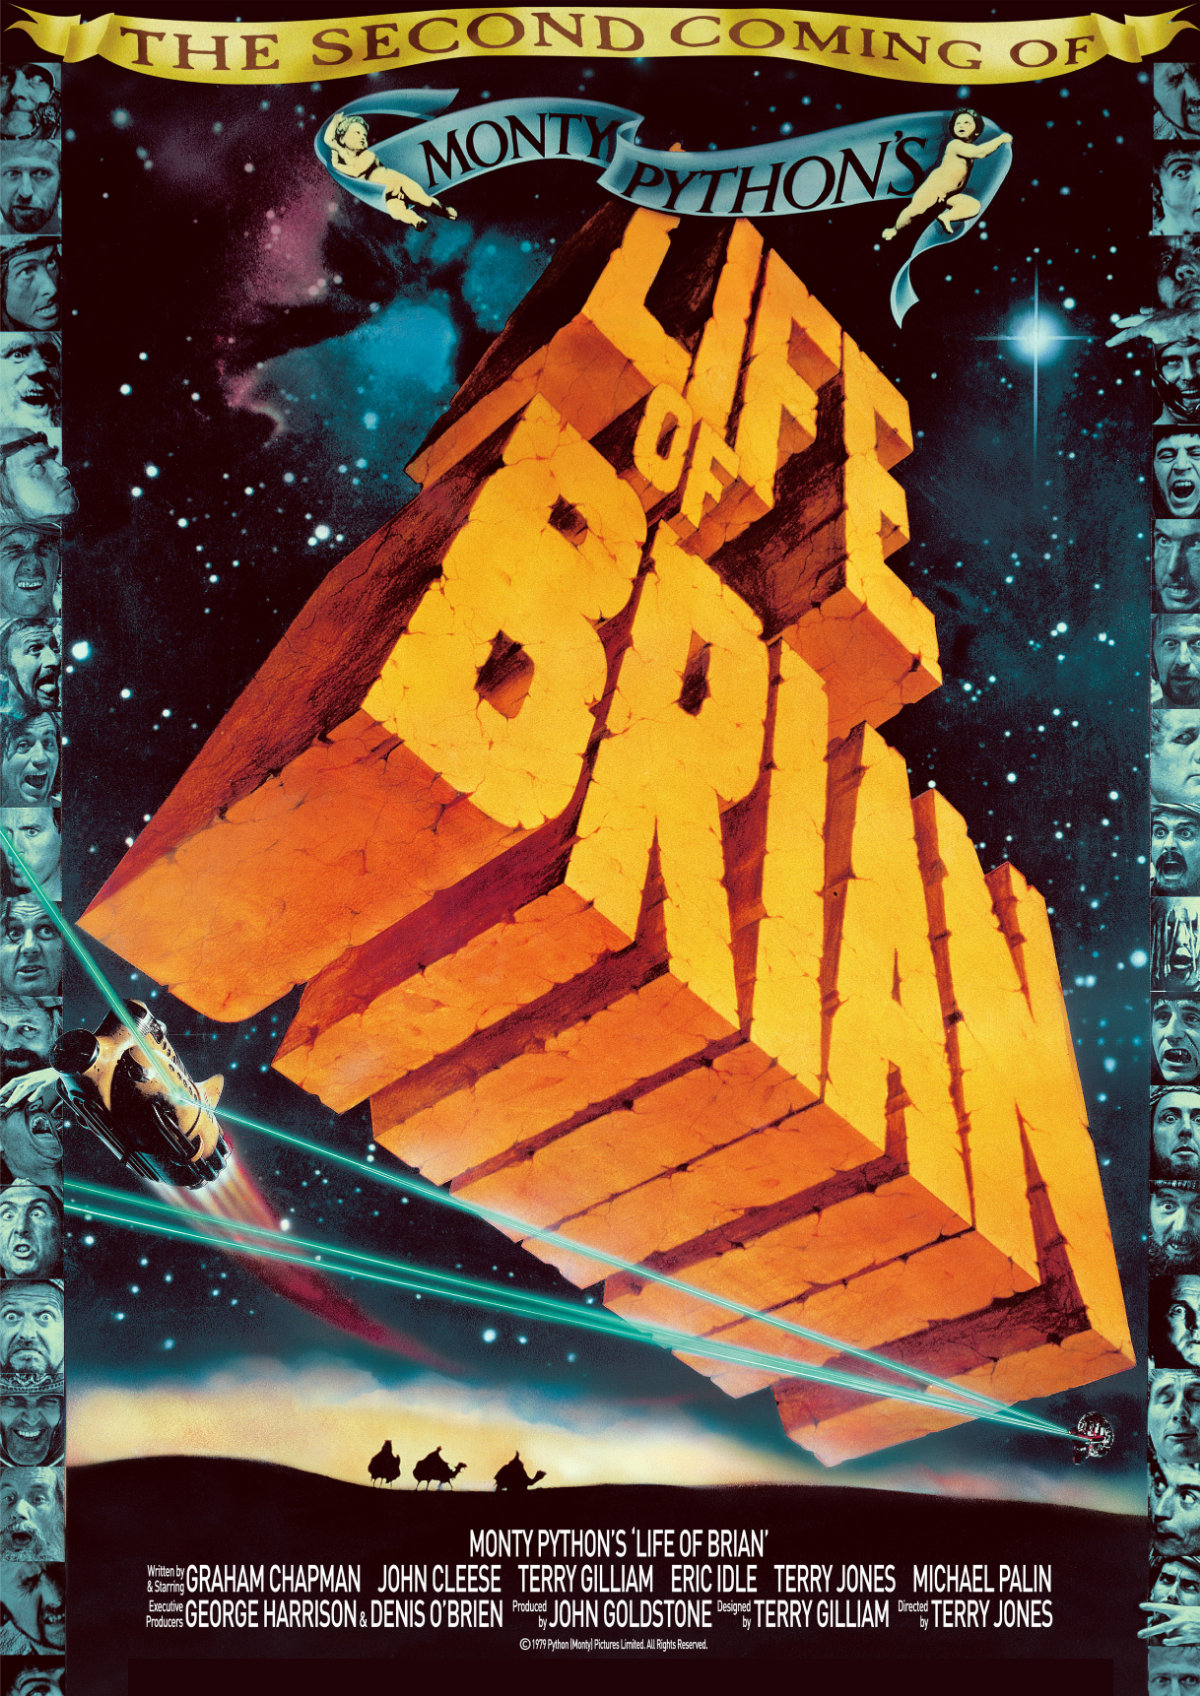 'Monty Python's Life Of Brian' movie poster